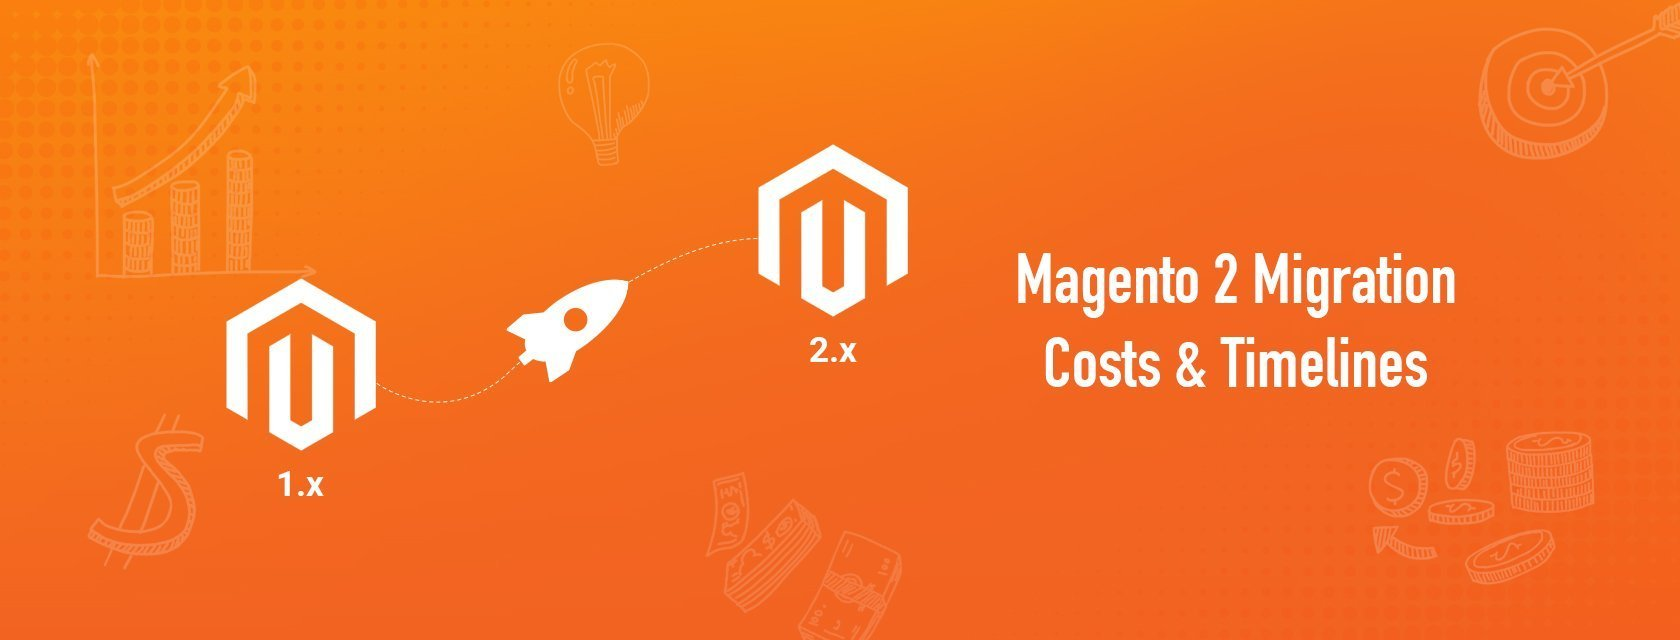 Magento 2 migration – How much does it cost to migrate your store to Magento 2?